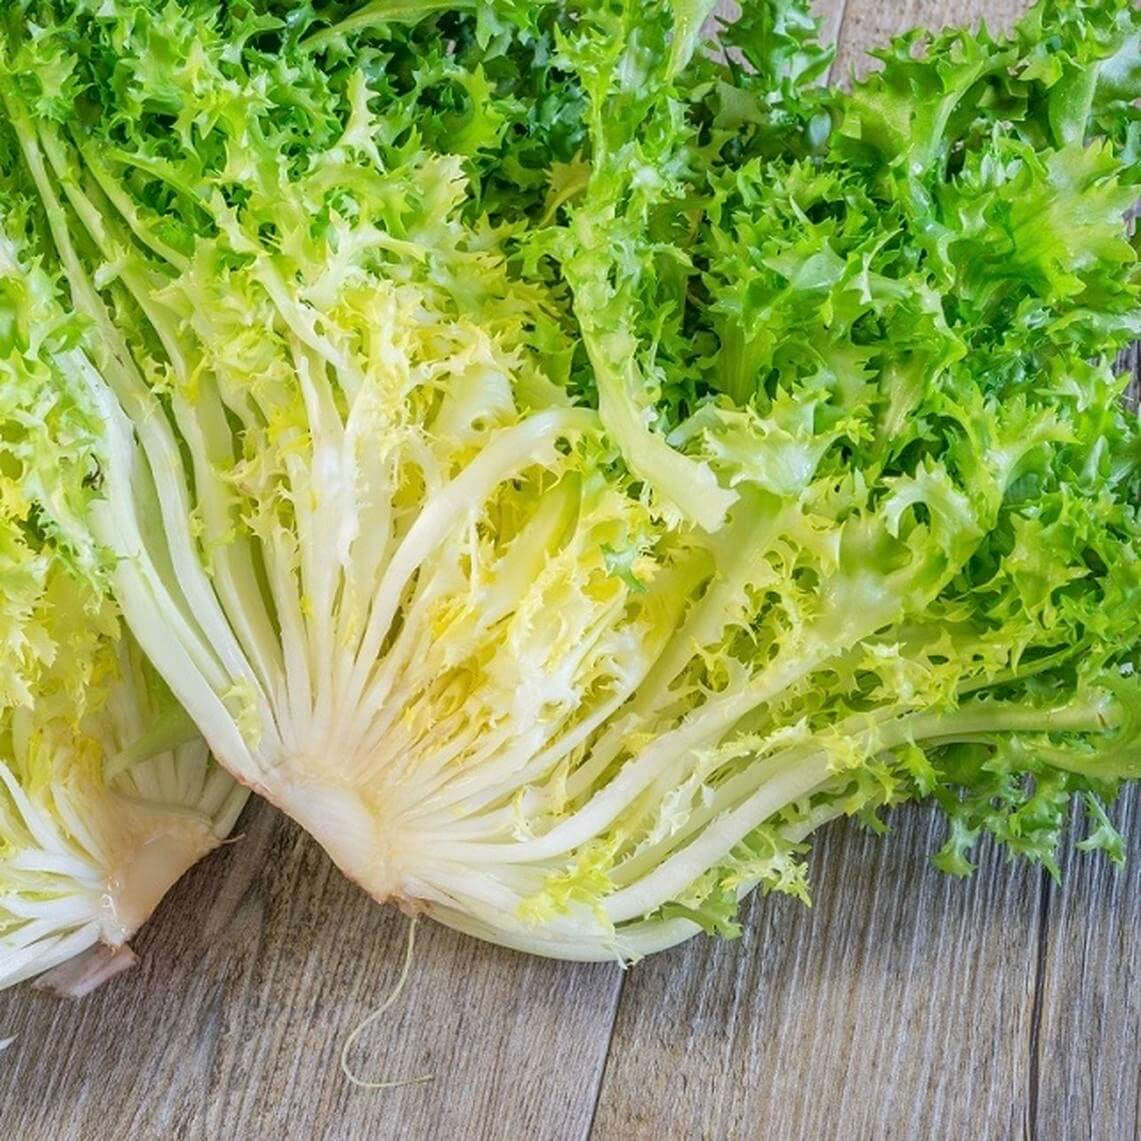 lettuce-frizzie-green-online-grocery-delivery-singapore-thenewgrocer